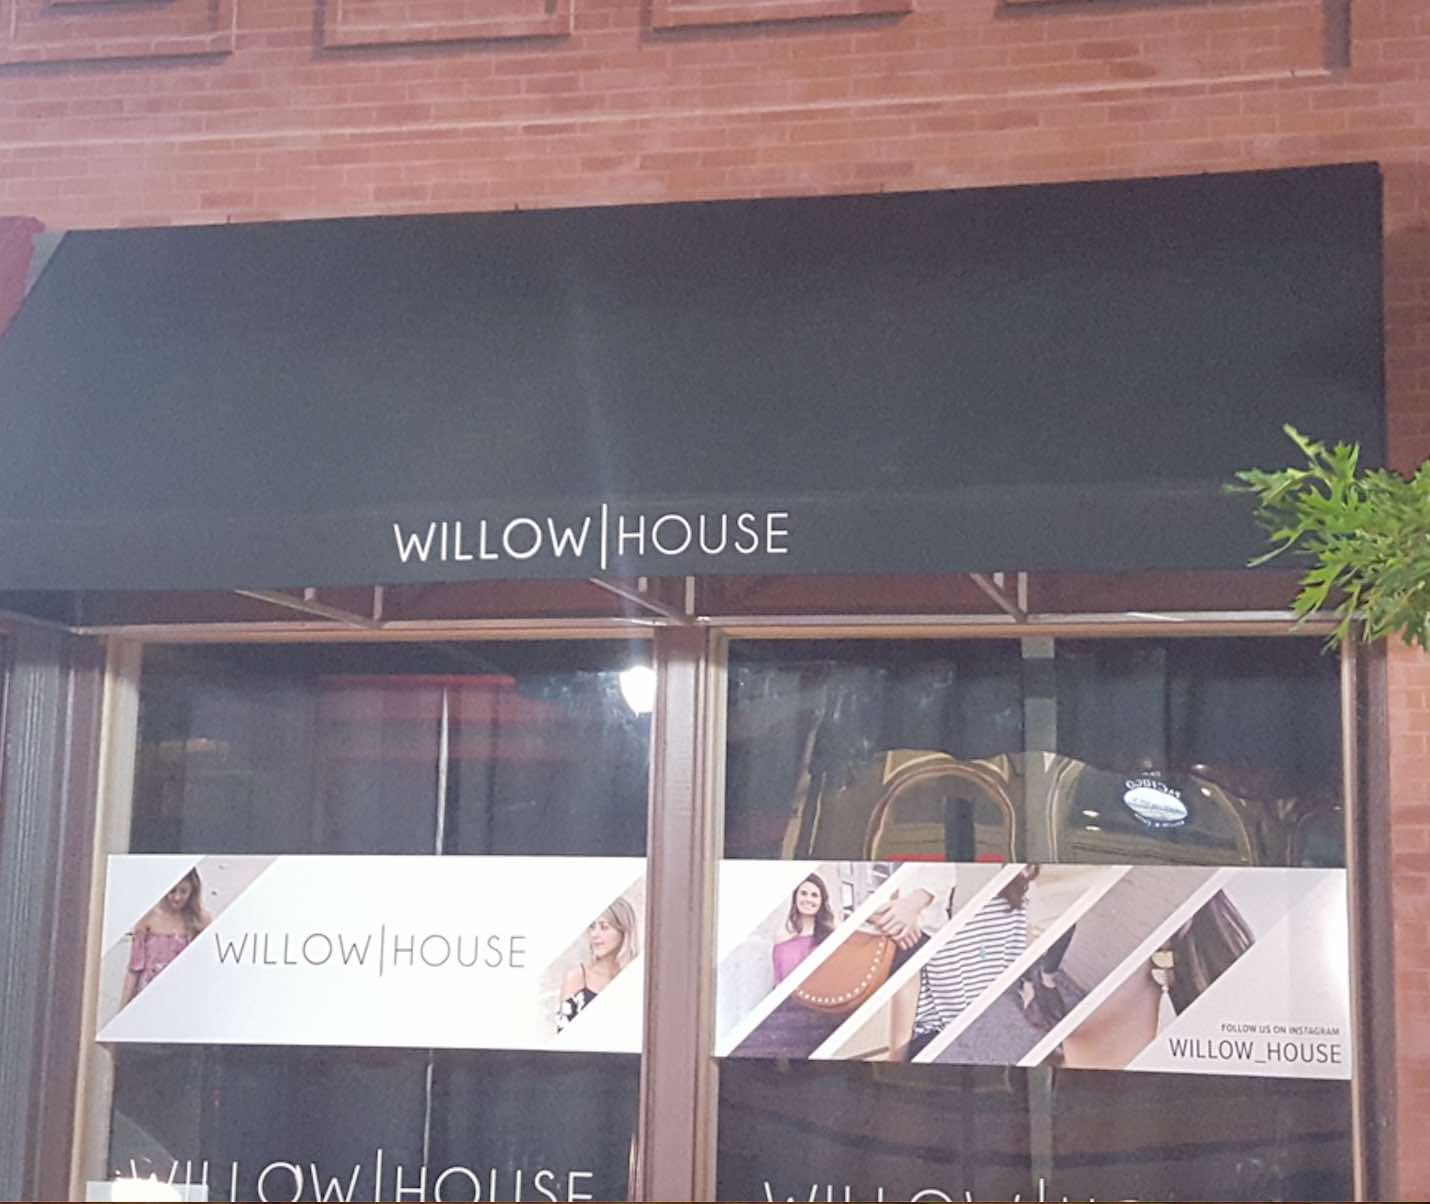 Willow House Awning